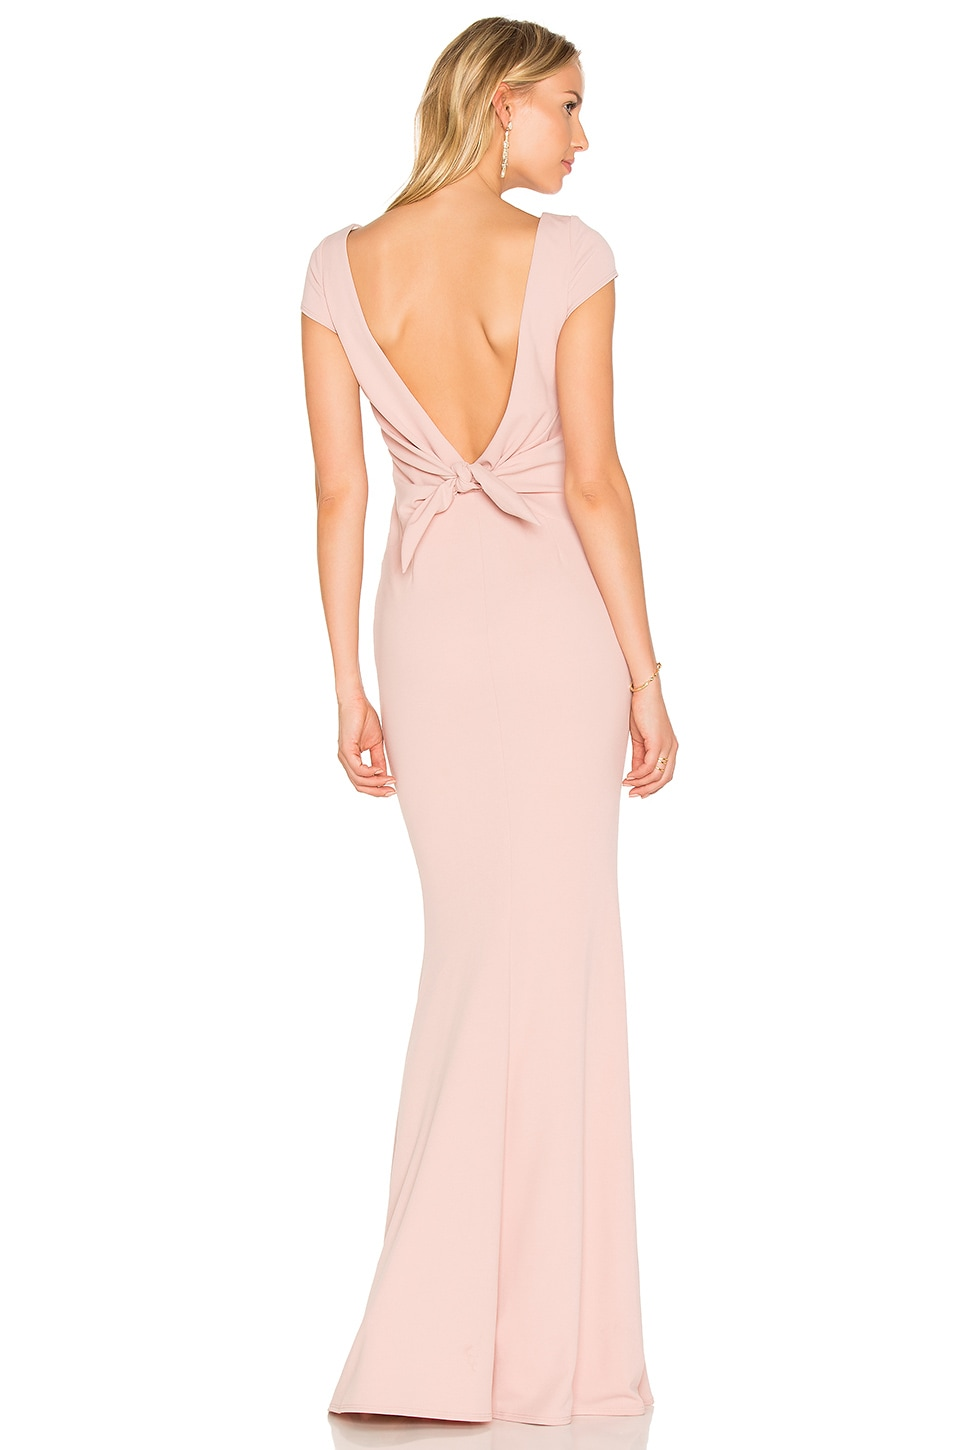 Katie May Intrigue Gown in Dusty Rose